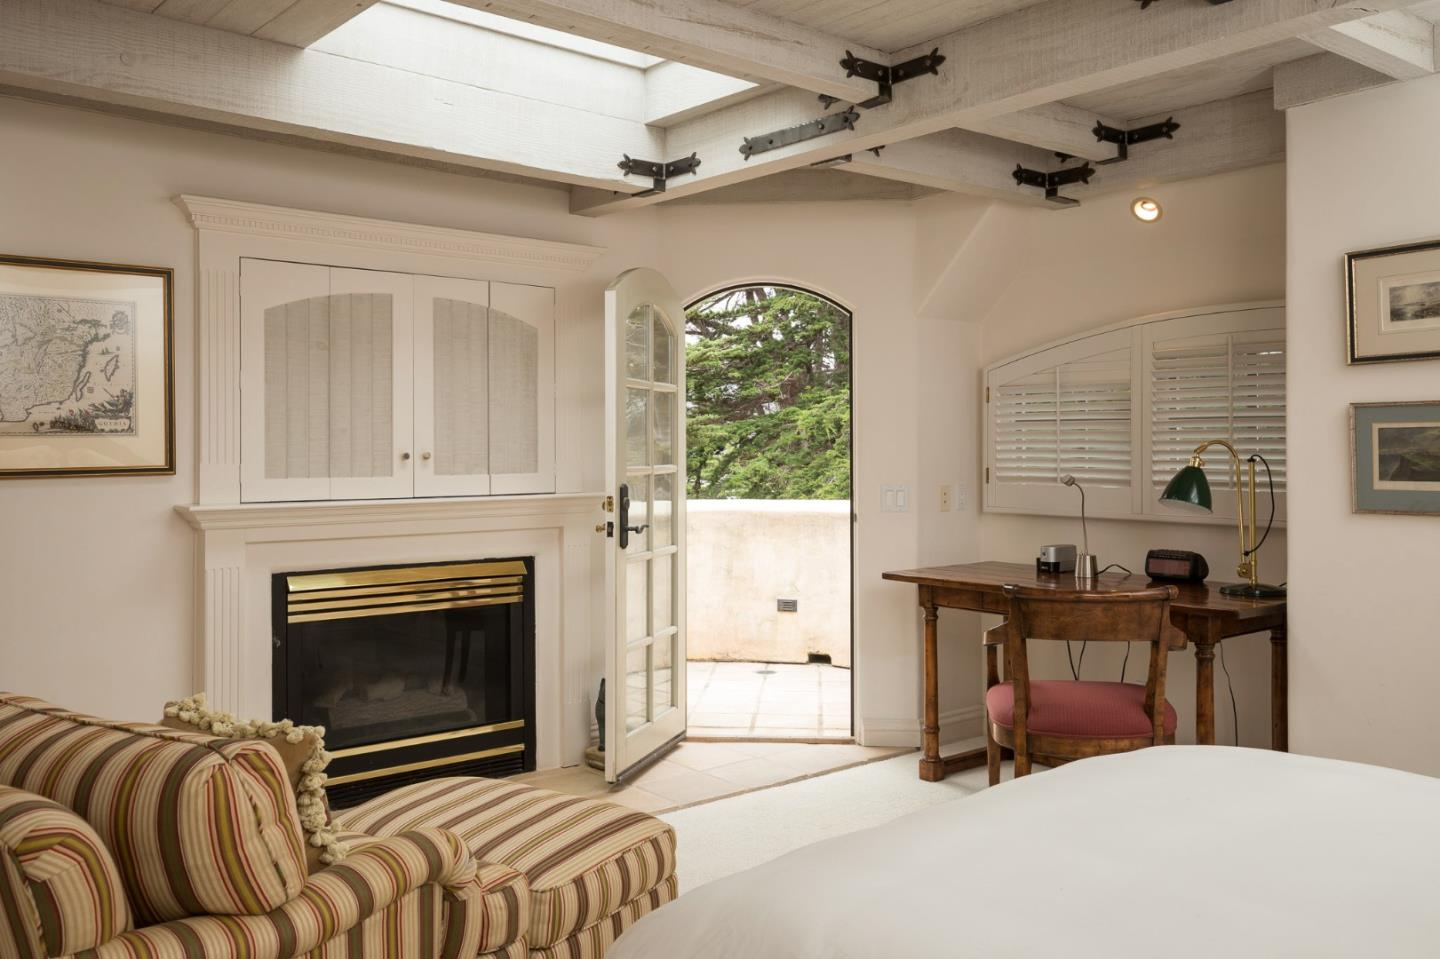 Storybook cottage in Carmel Ca for sale - Bedroom with balcony and fireplace